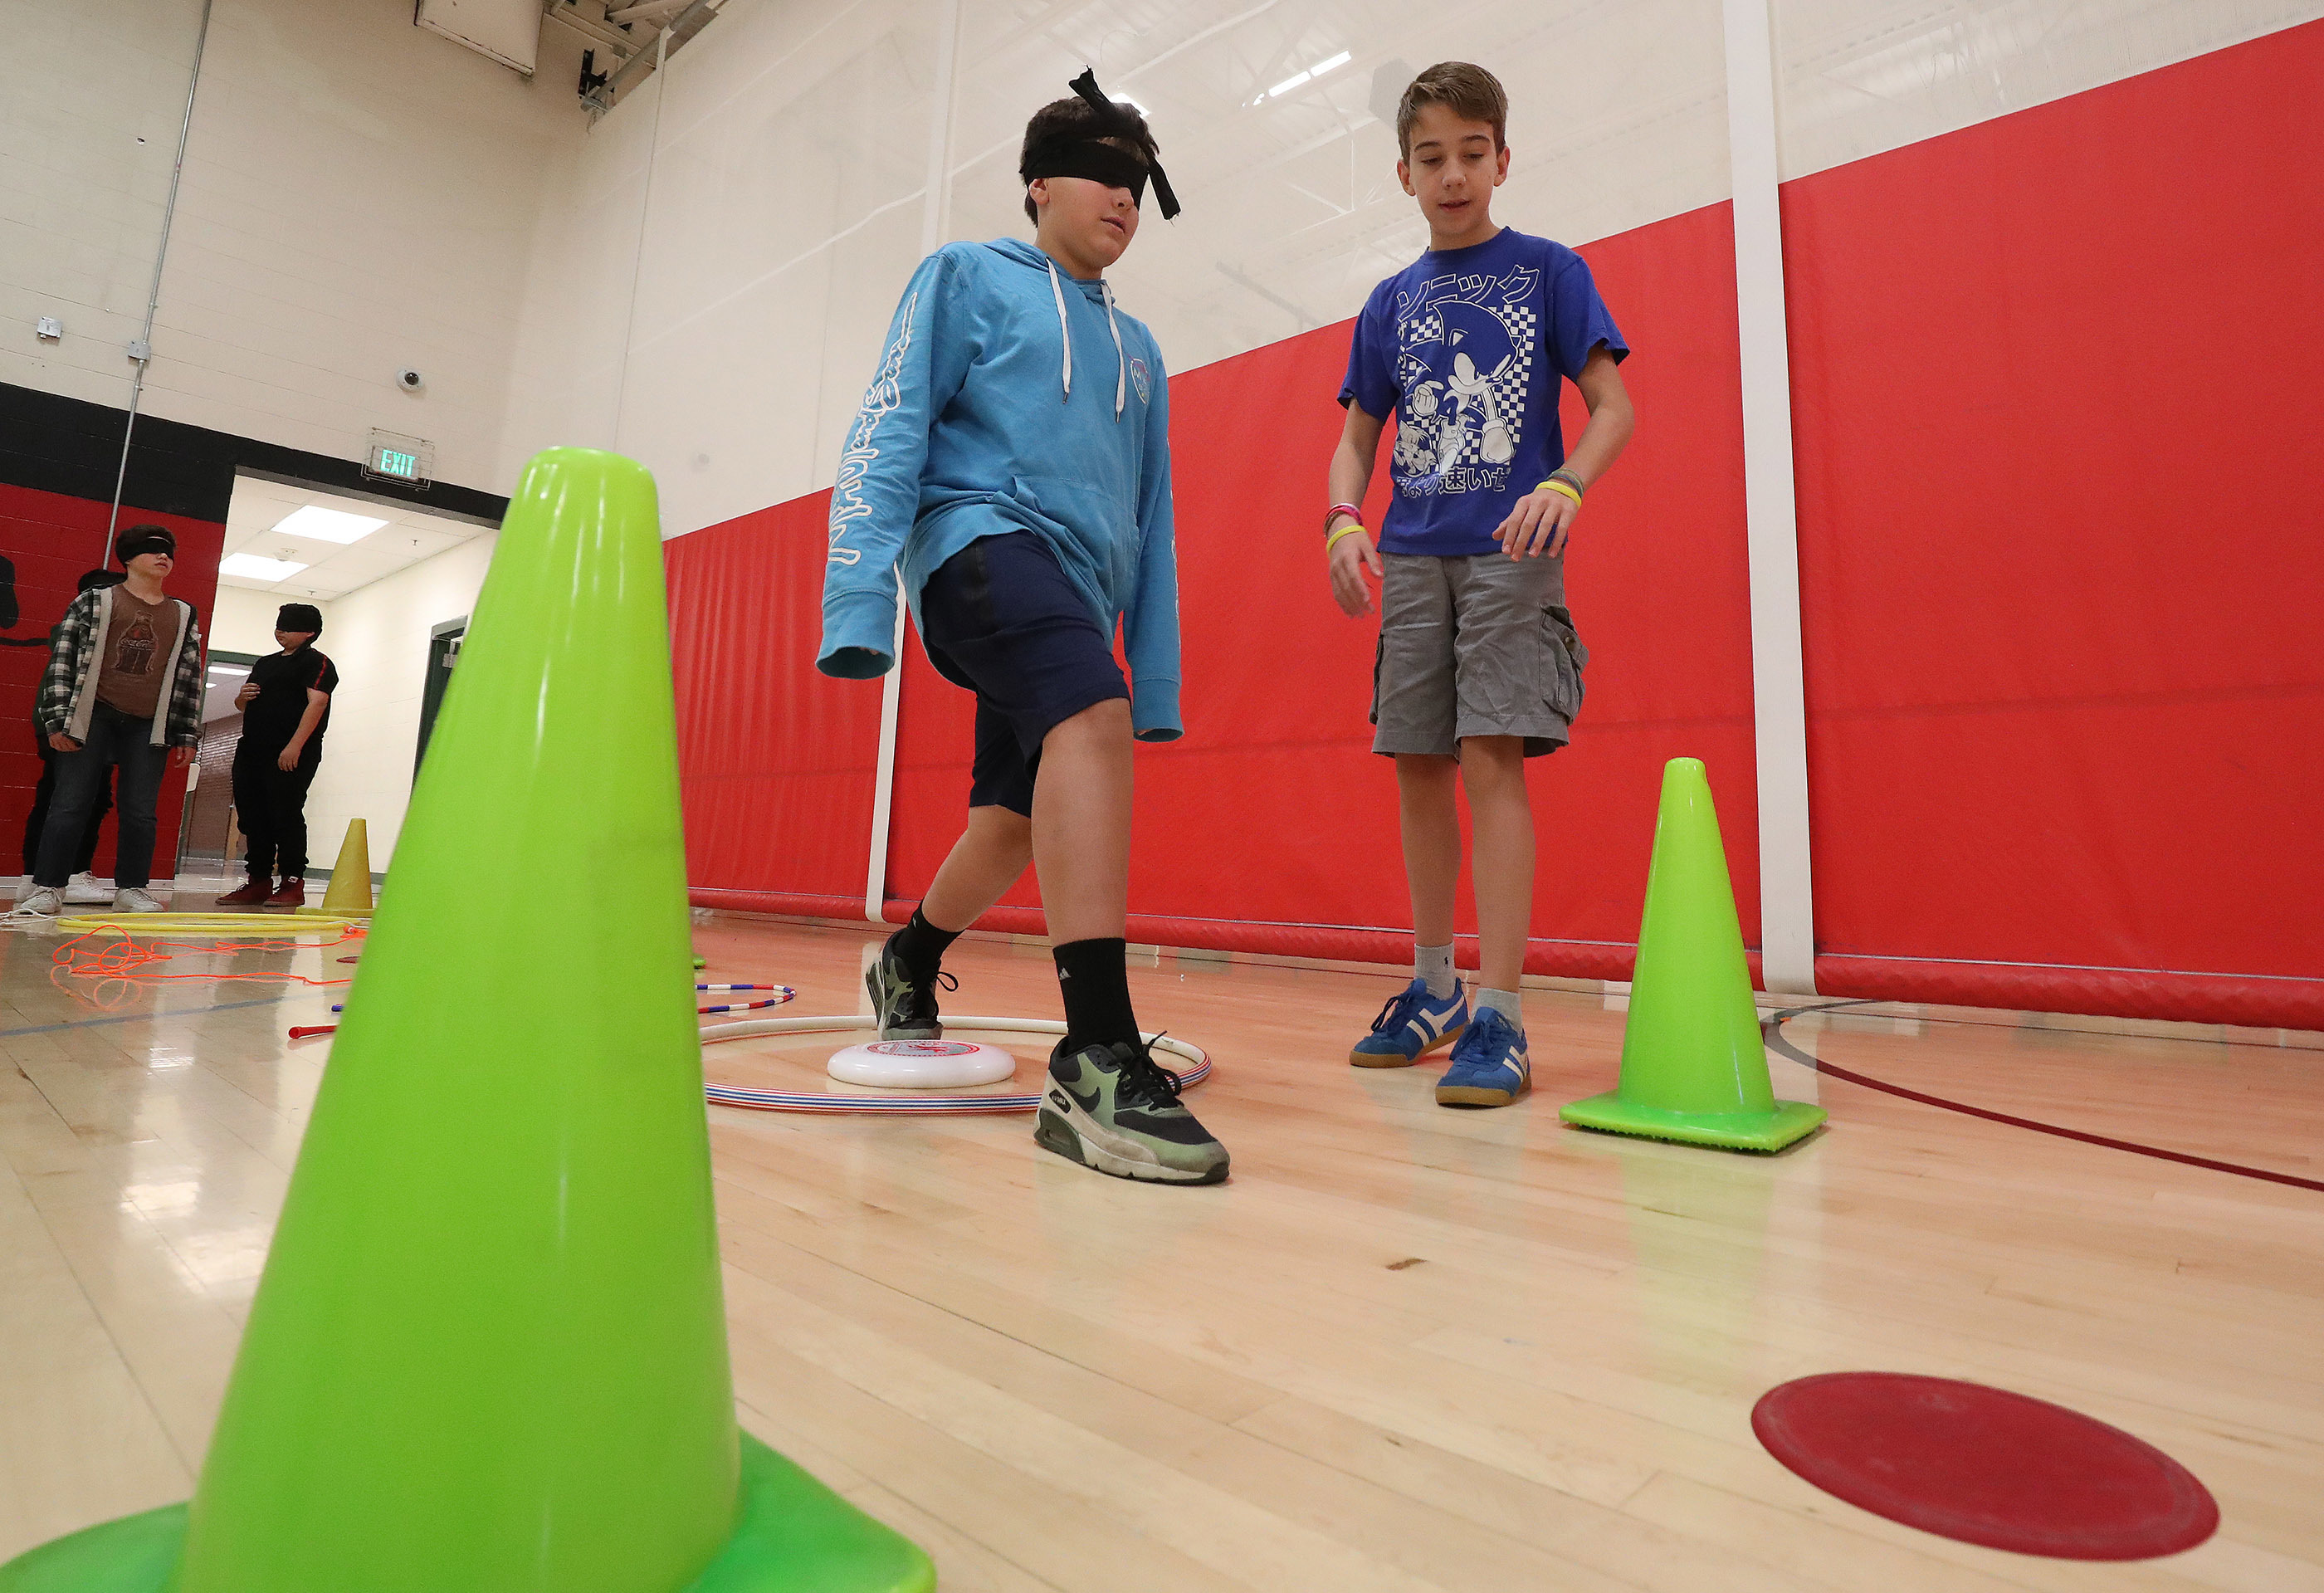 Bryant Middle School students Tobias Barnette and London Christensen participate in a team-building exercise in Salt Lake City on Wednesday, Sept. 19, 2018. The goal was to get to the end of the obstacle course blindfolded without touching any of the fris